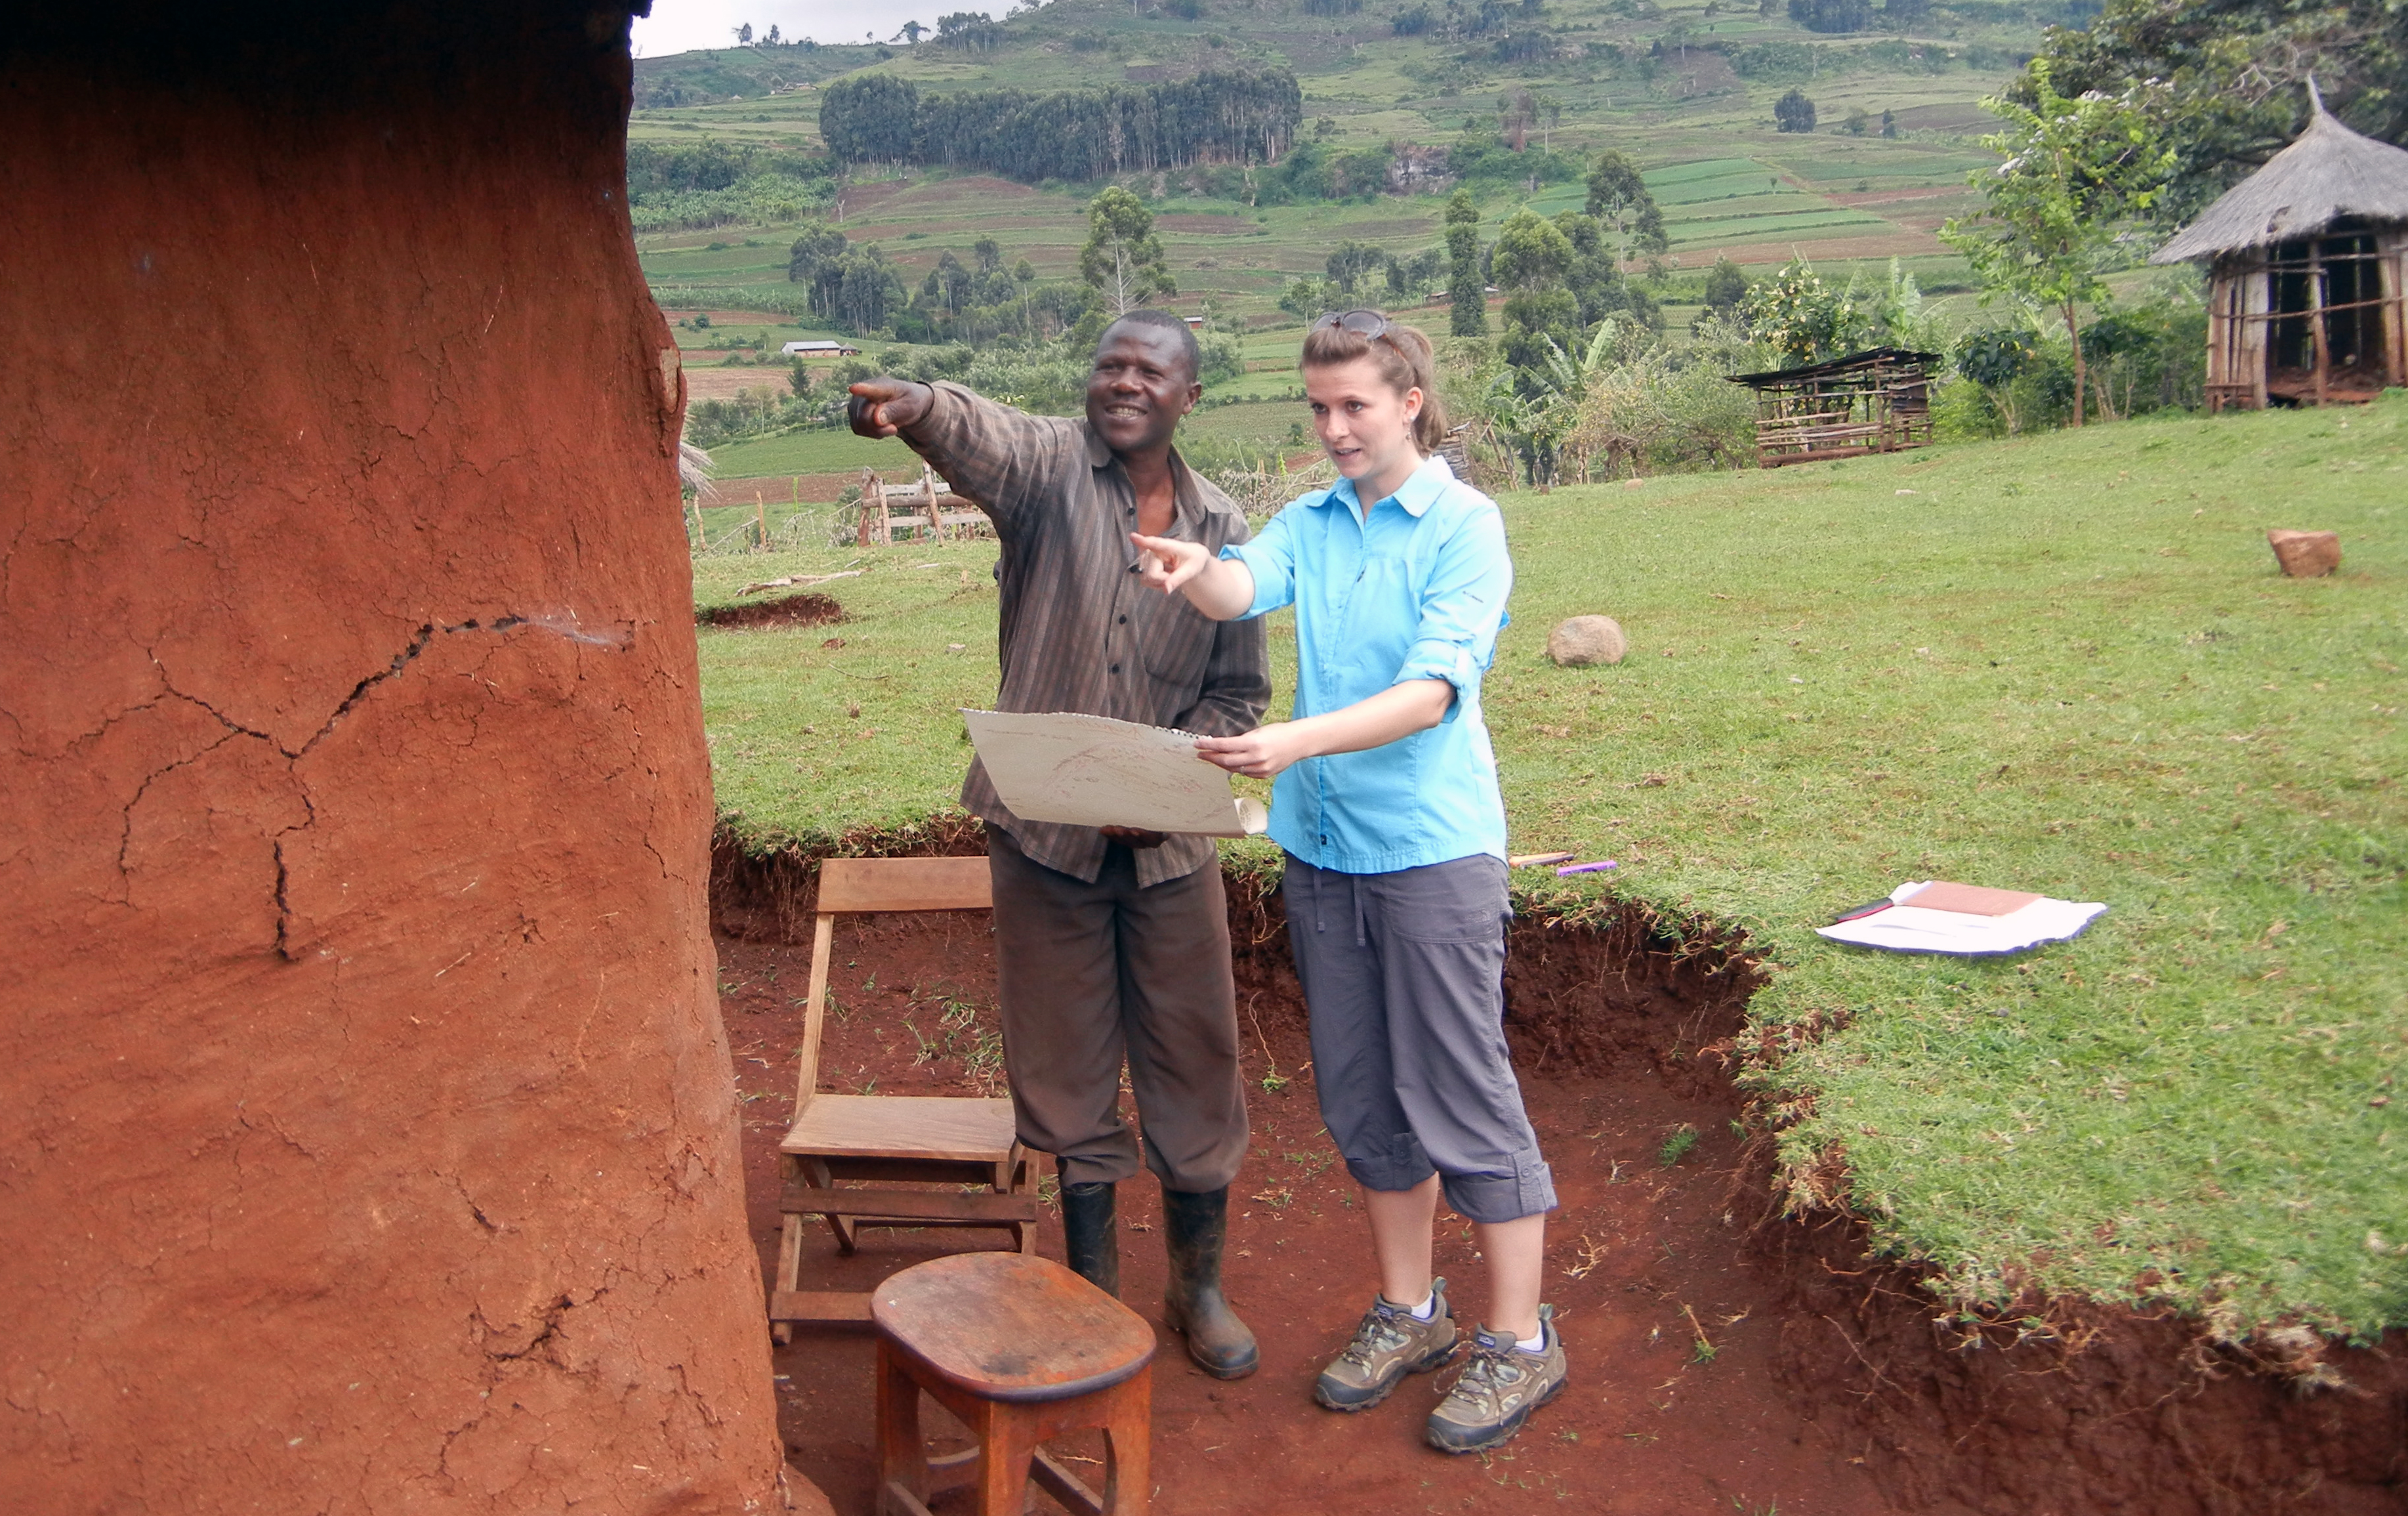 A Virginia Tech employee stands next to a farmer with a map in Uganda.